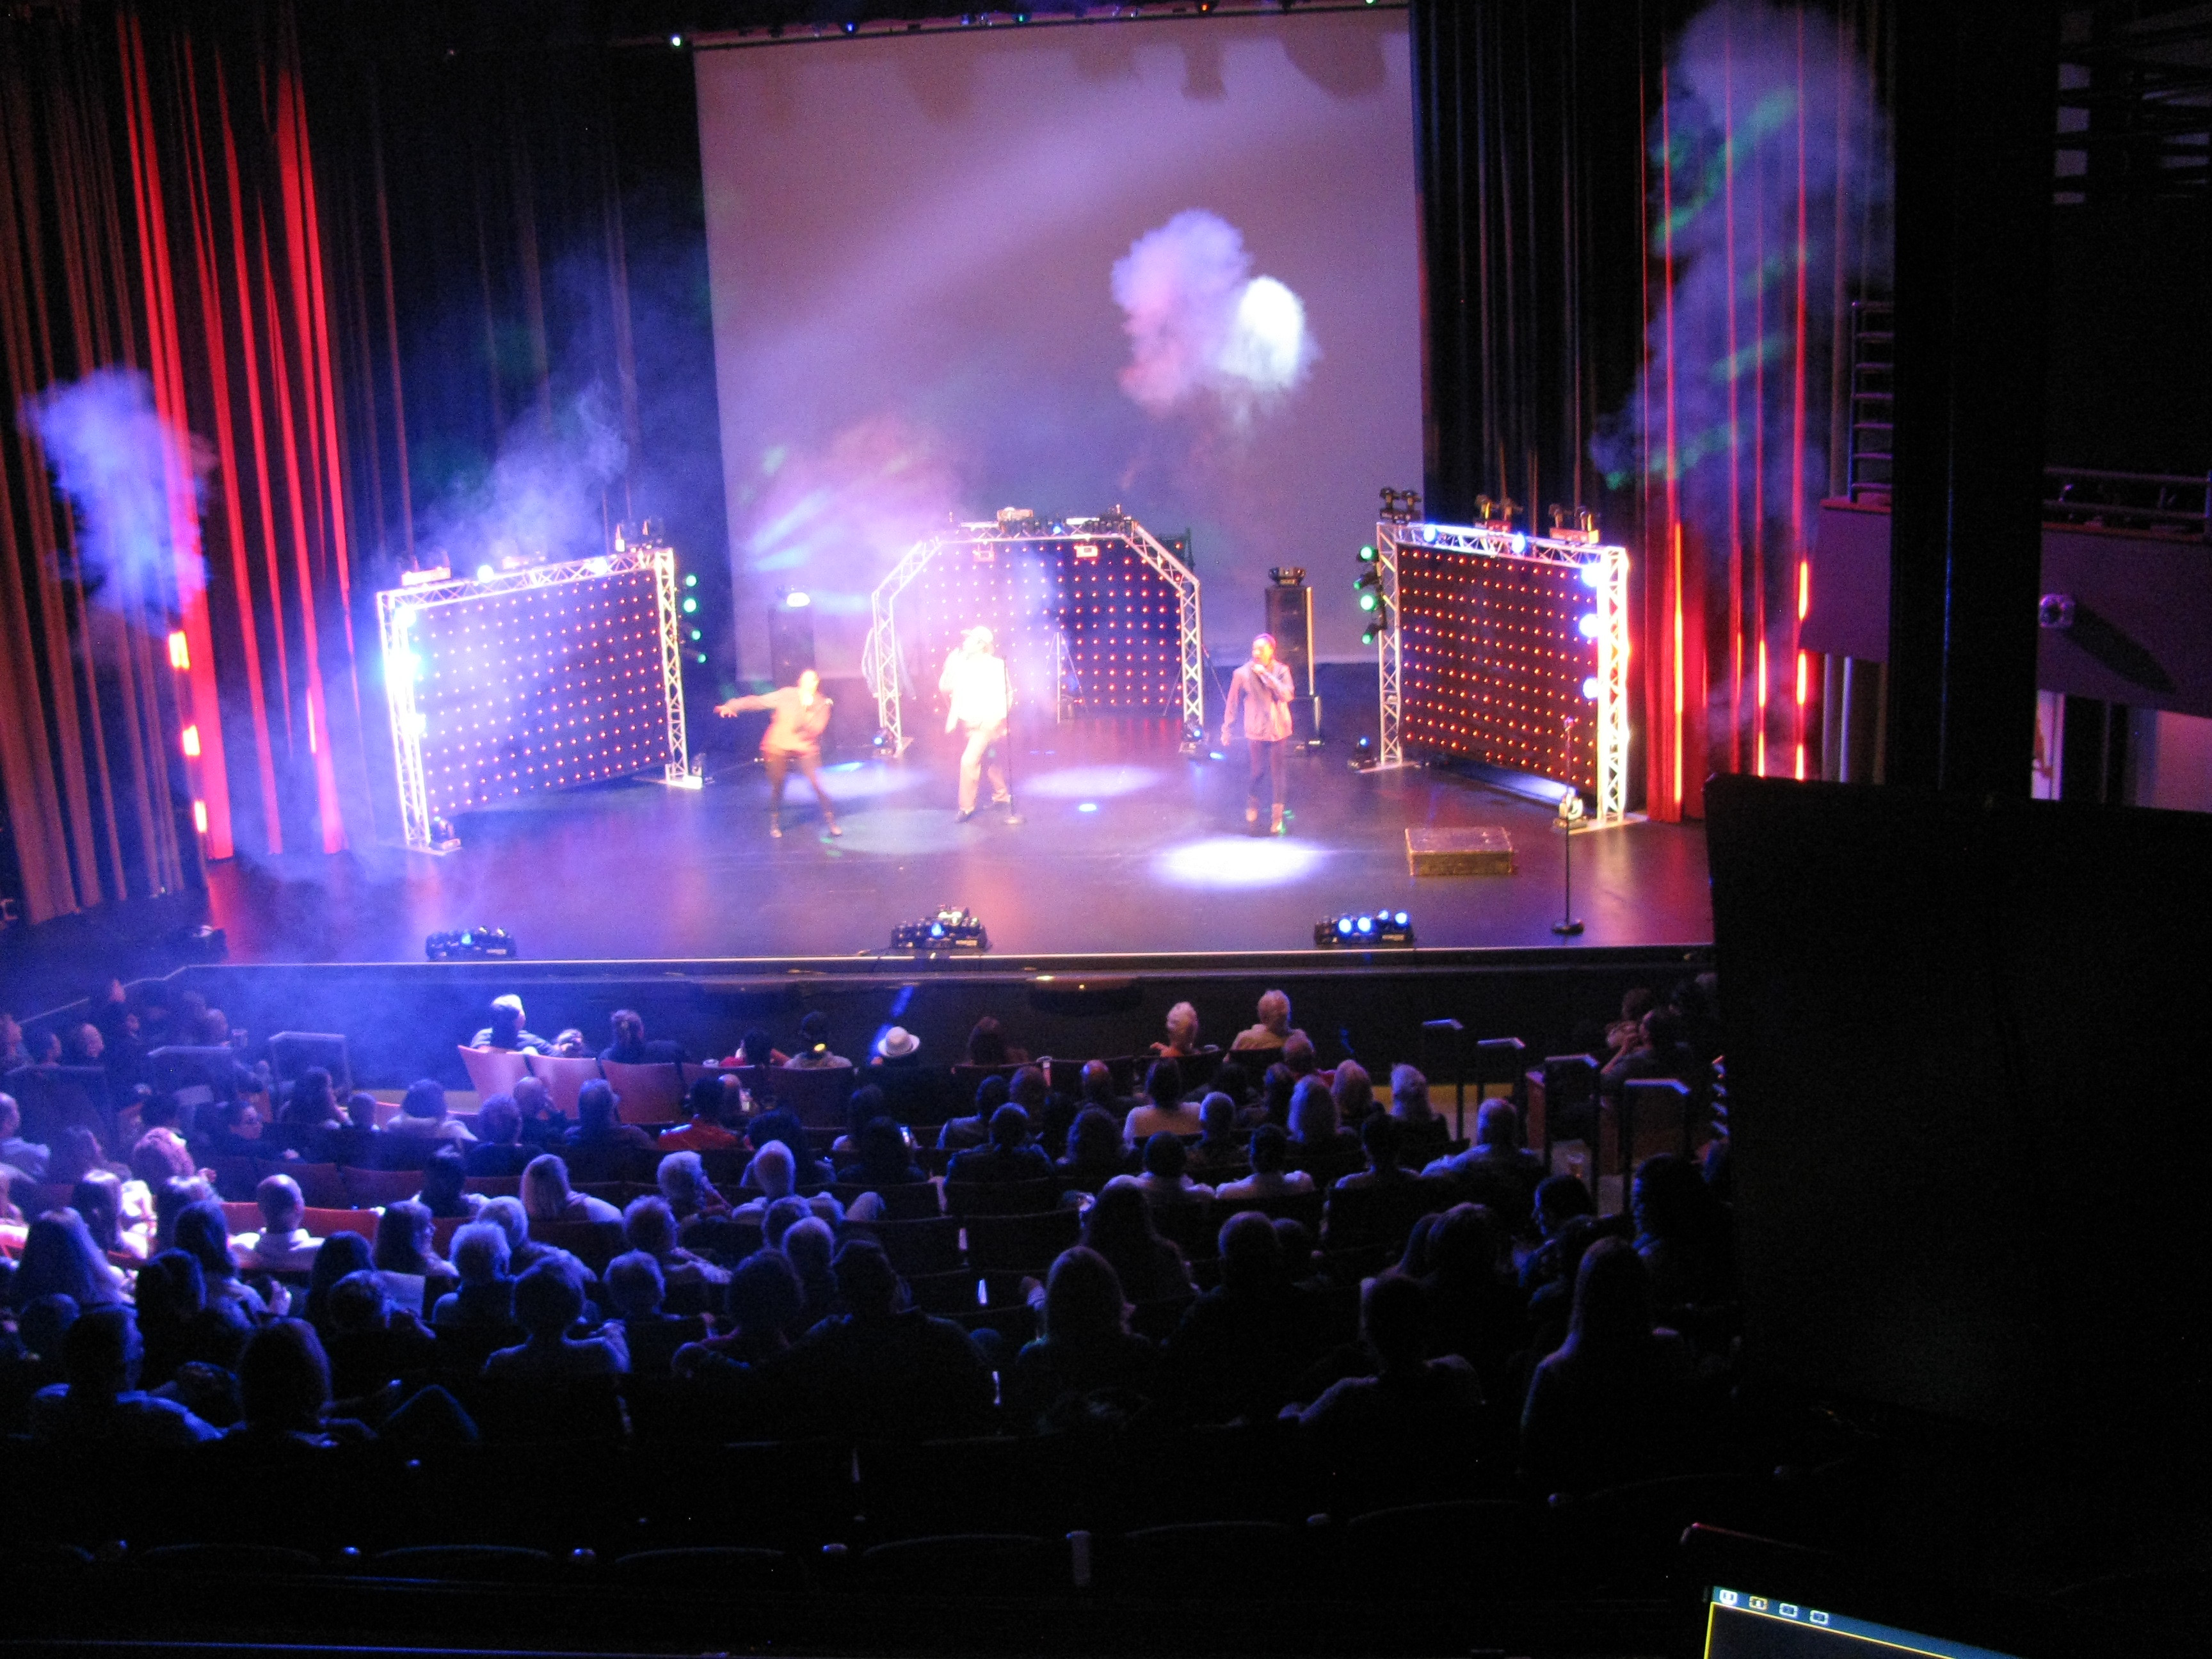 Stage Lighting & Trussing